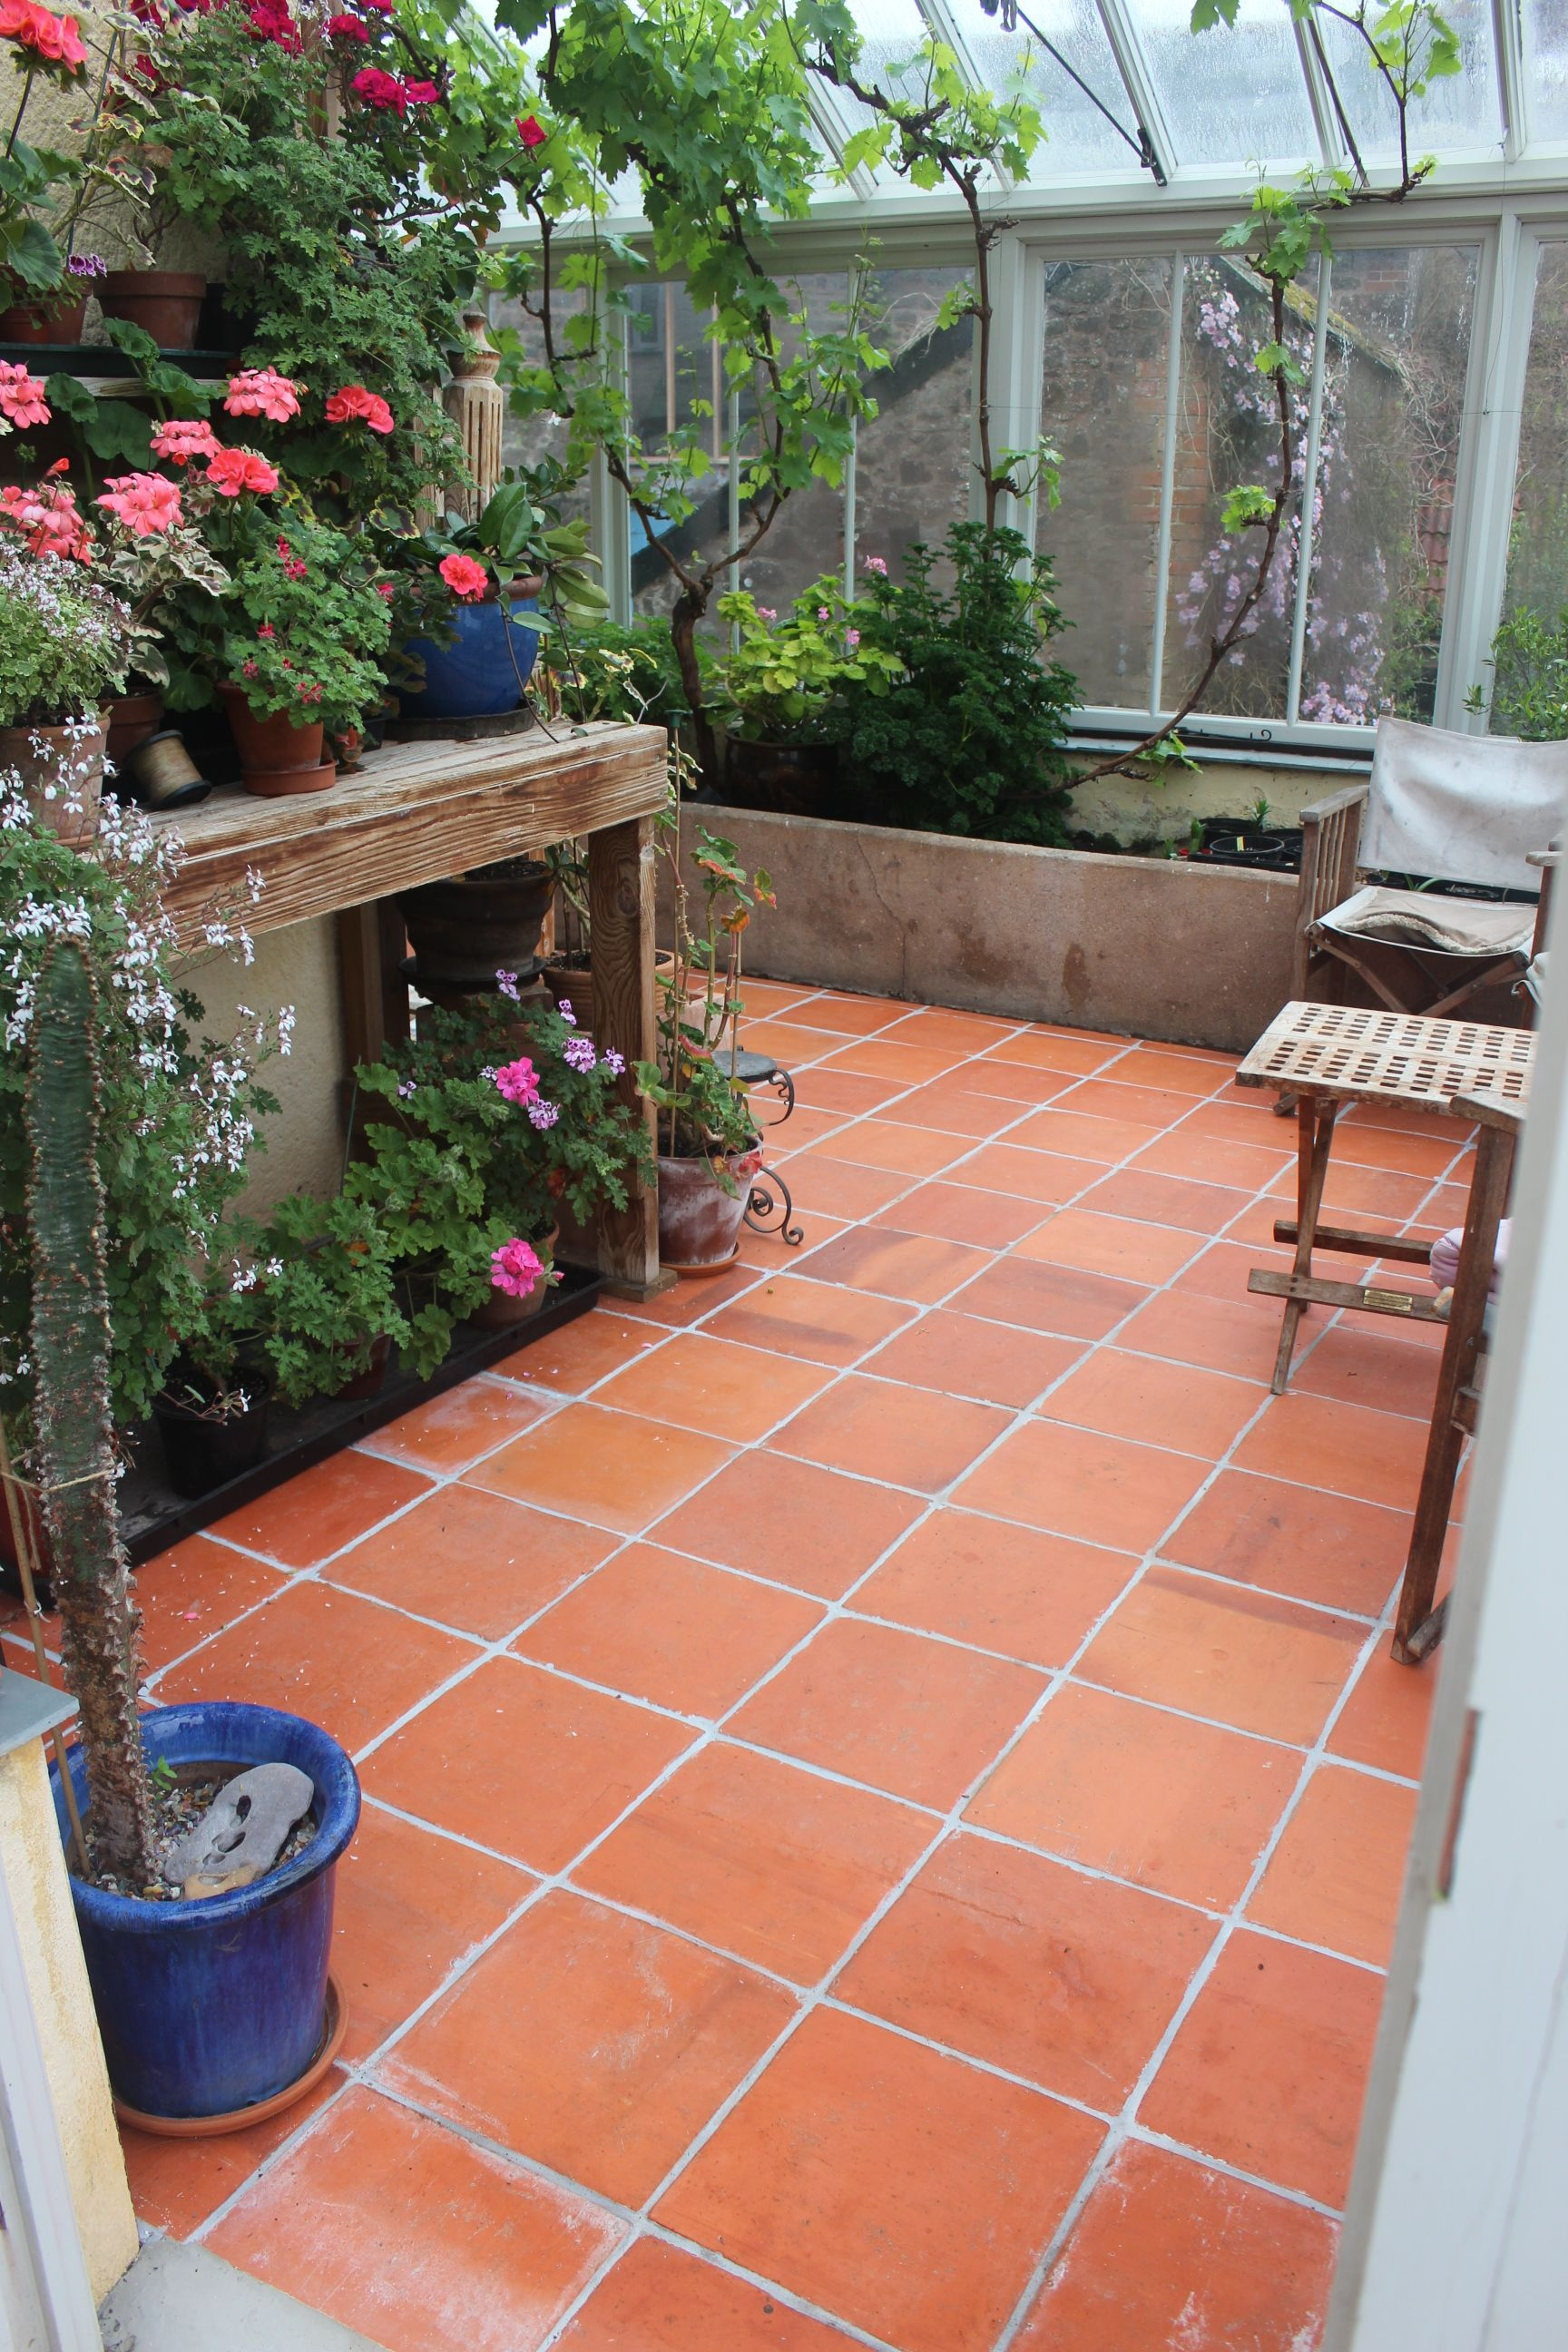 Rich vibrant terracotta tiles pinteres contact uk based leading company winkleigh timber for stone floor tiles floor tiles in devon city at cheap rate dailygadgetfo Choice Image